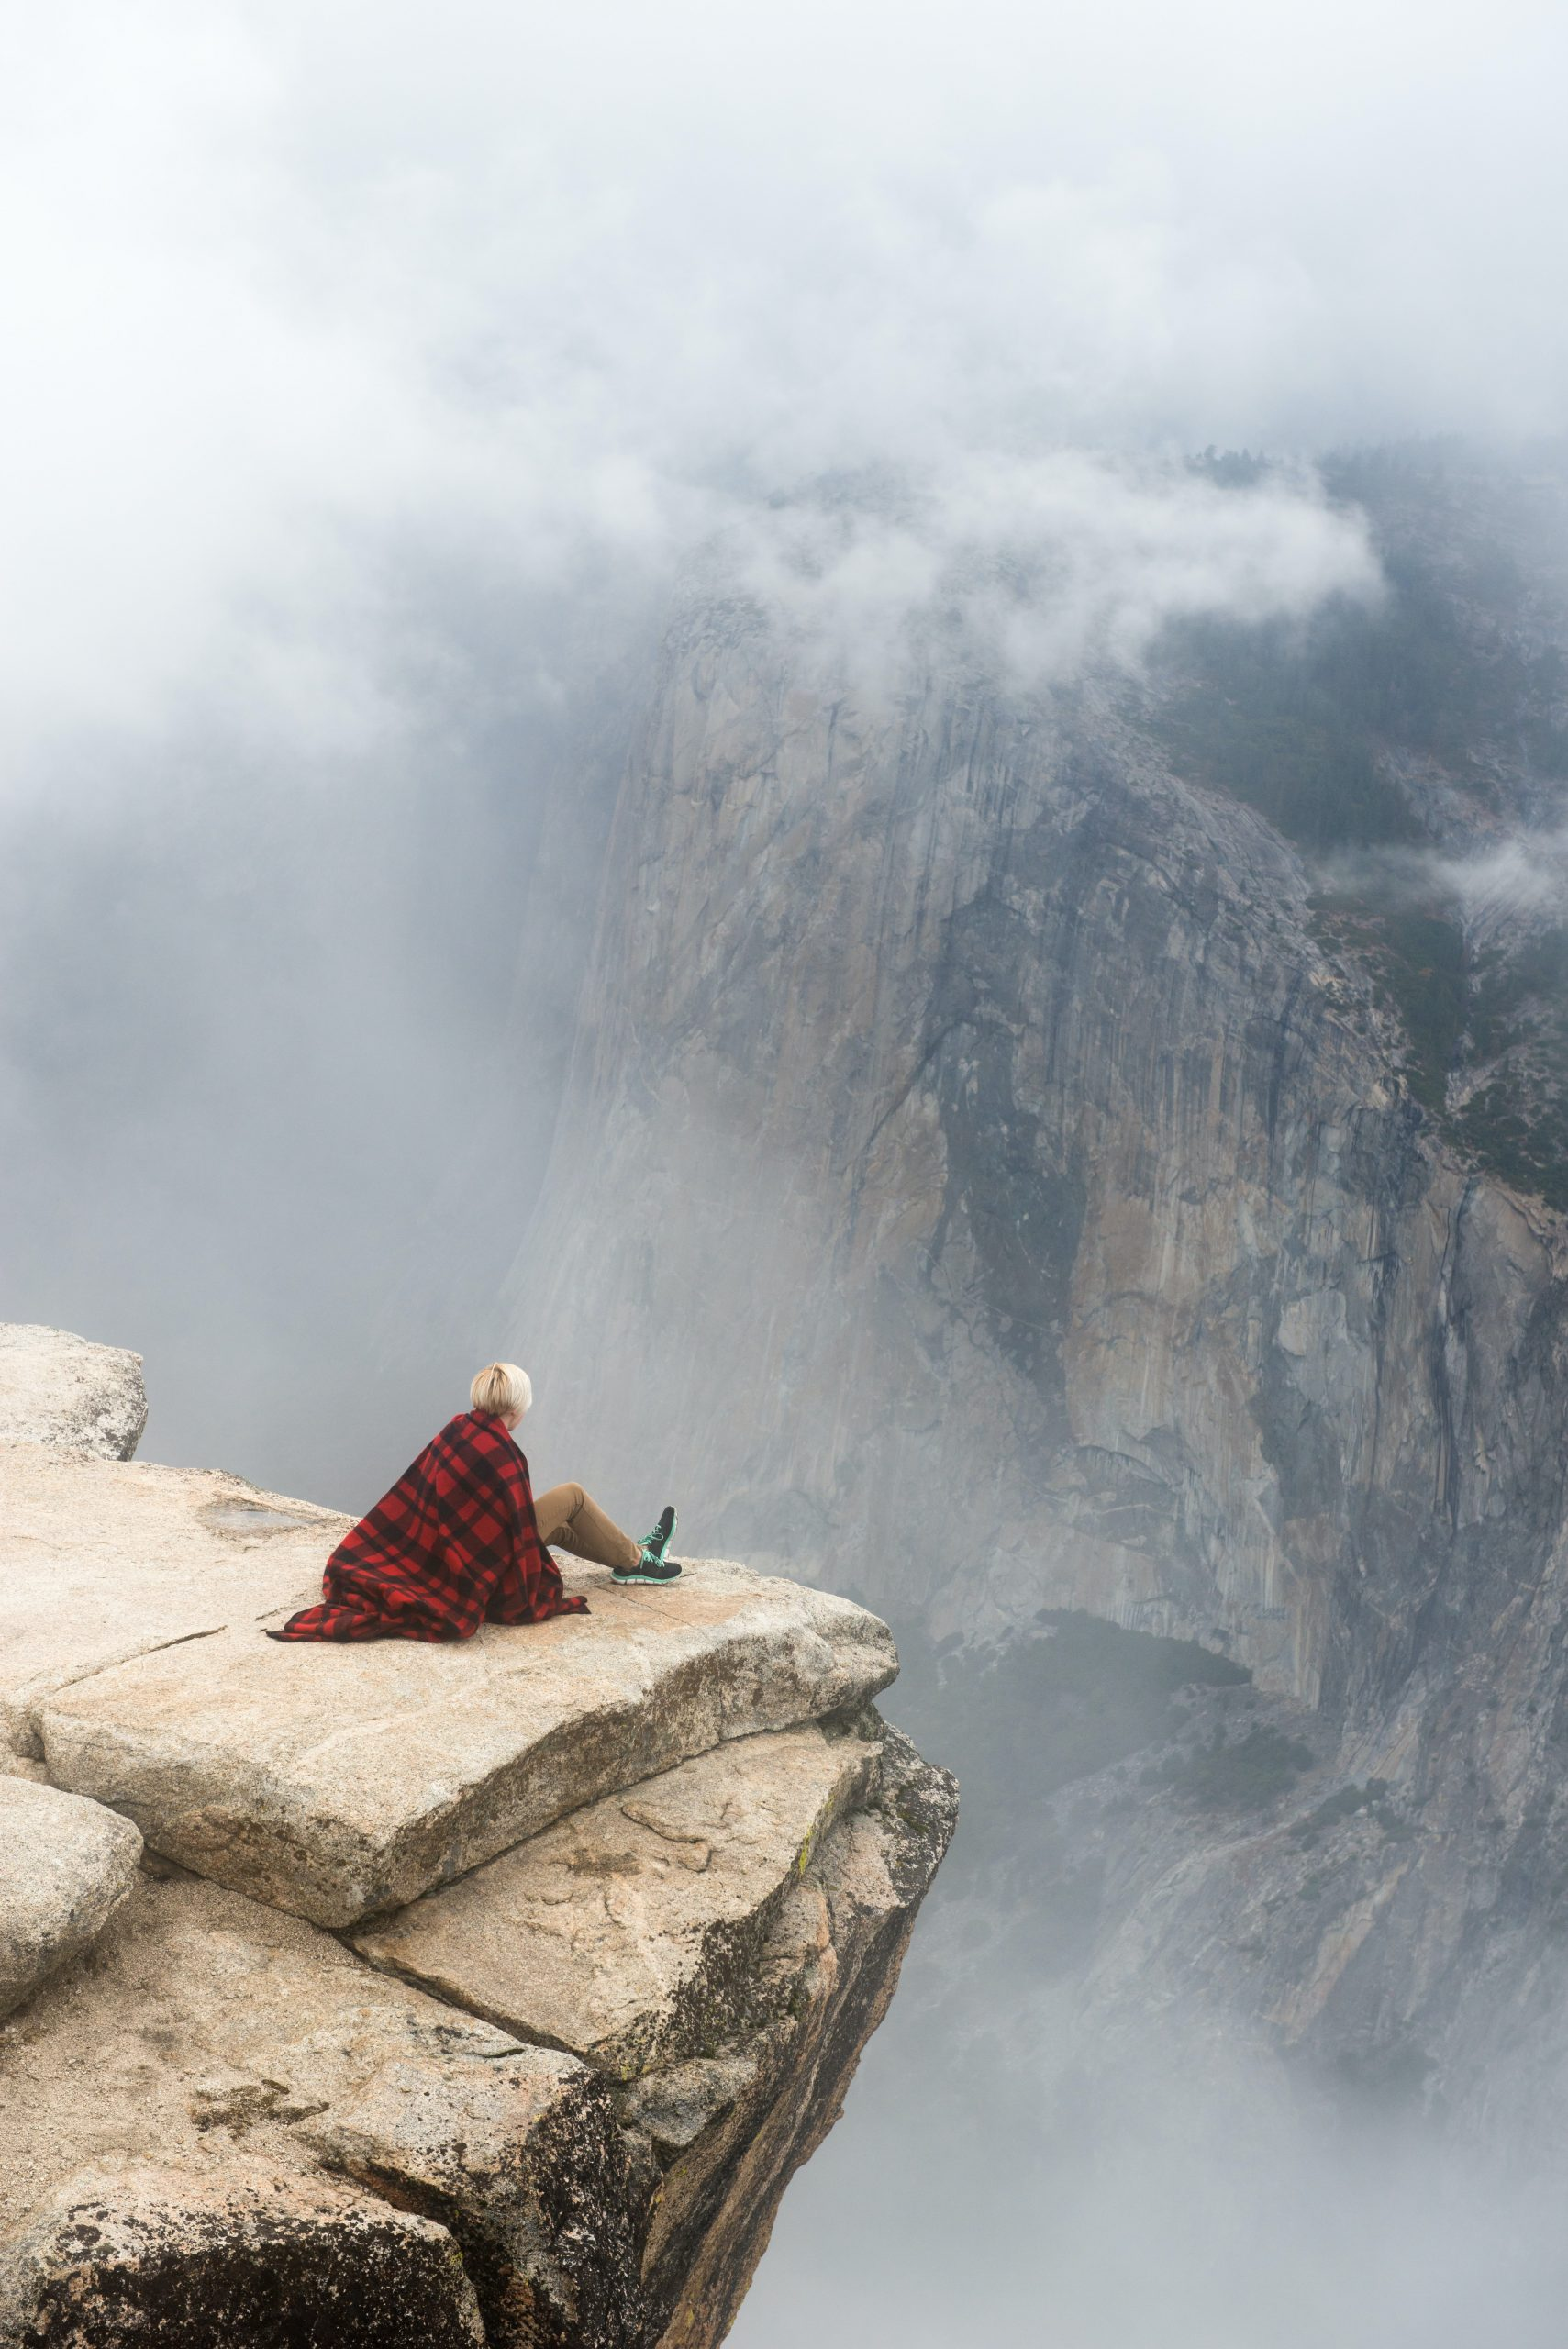 emdr section image of person looking over a cliff